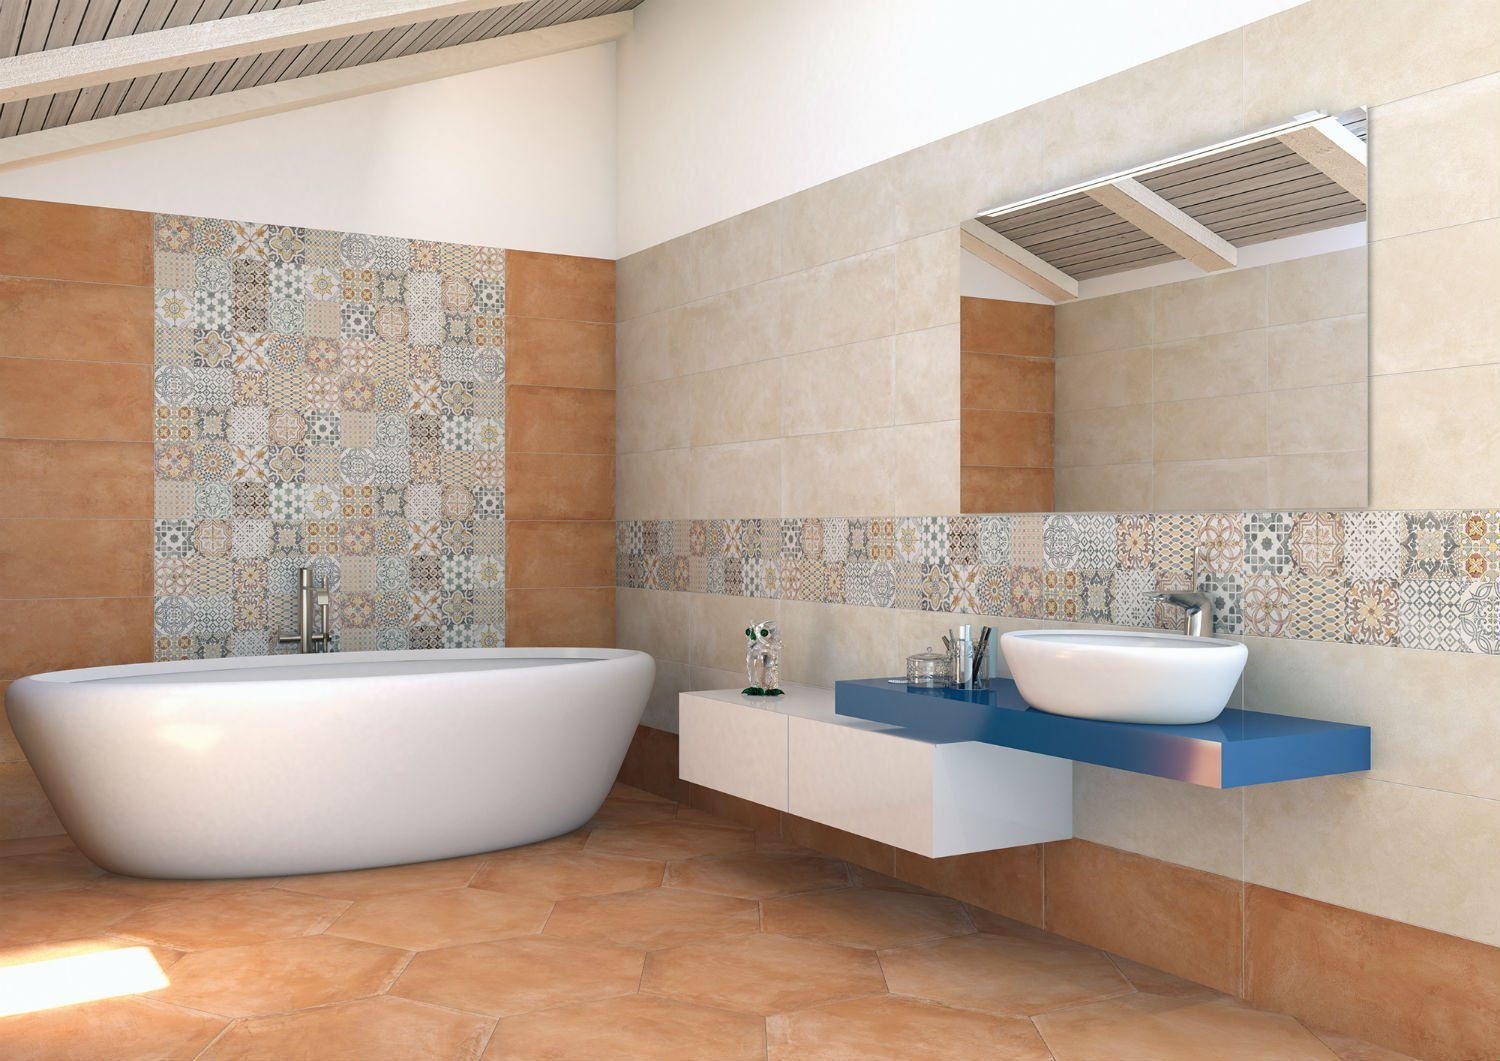 Piastrelle bagno decorate simple with piastrelle bagno - Piastrelle decorate per bagno ...